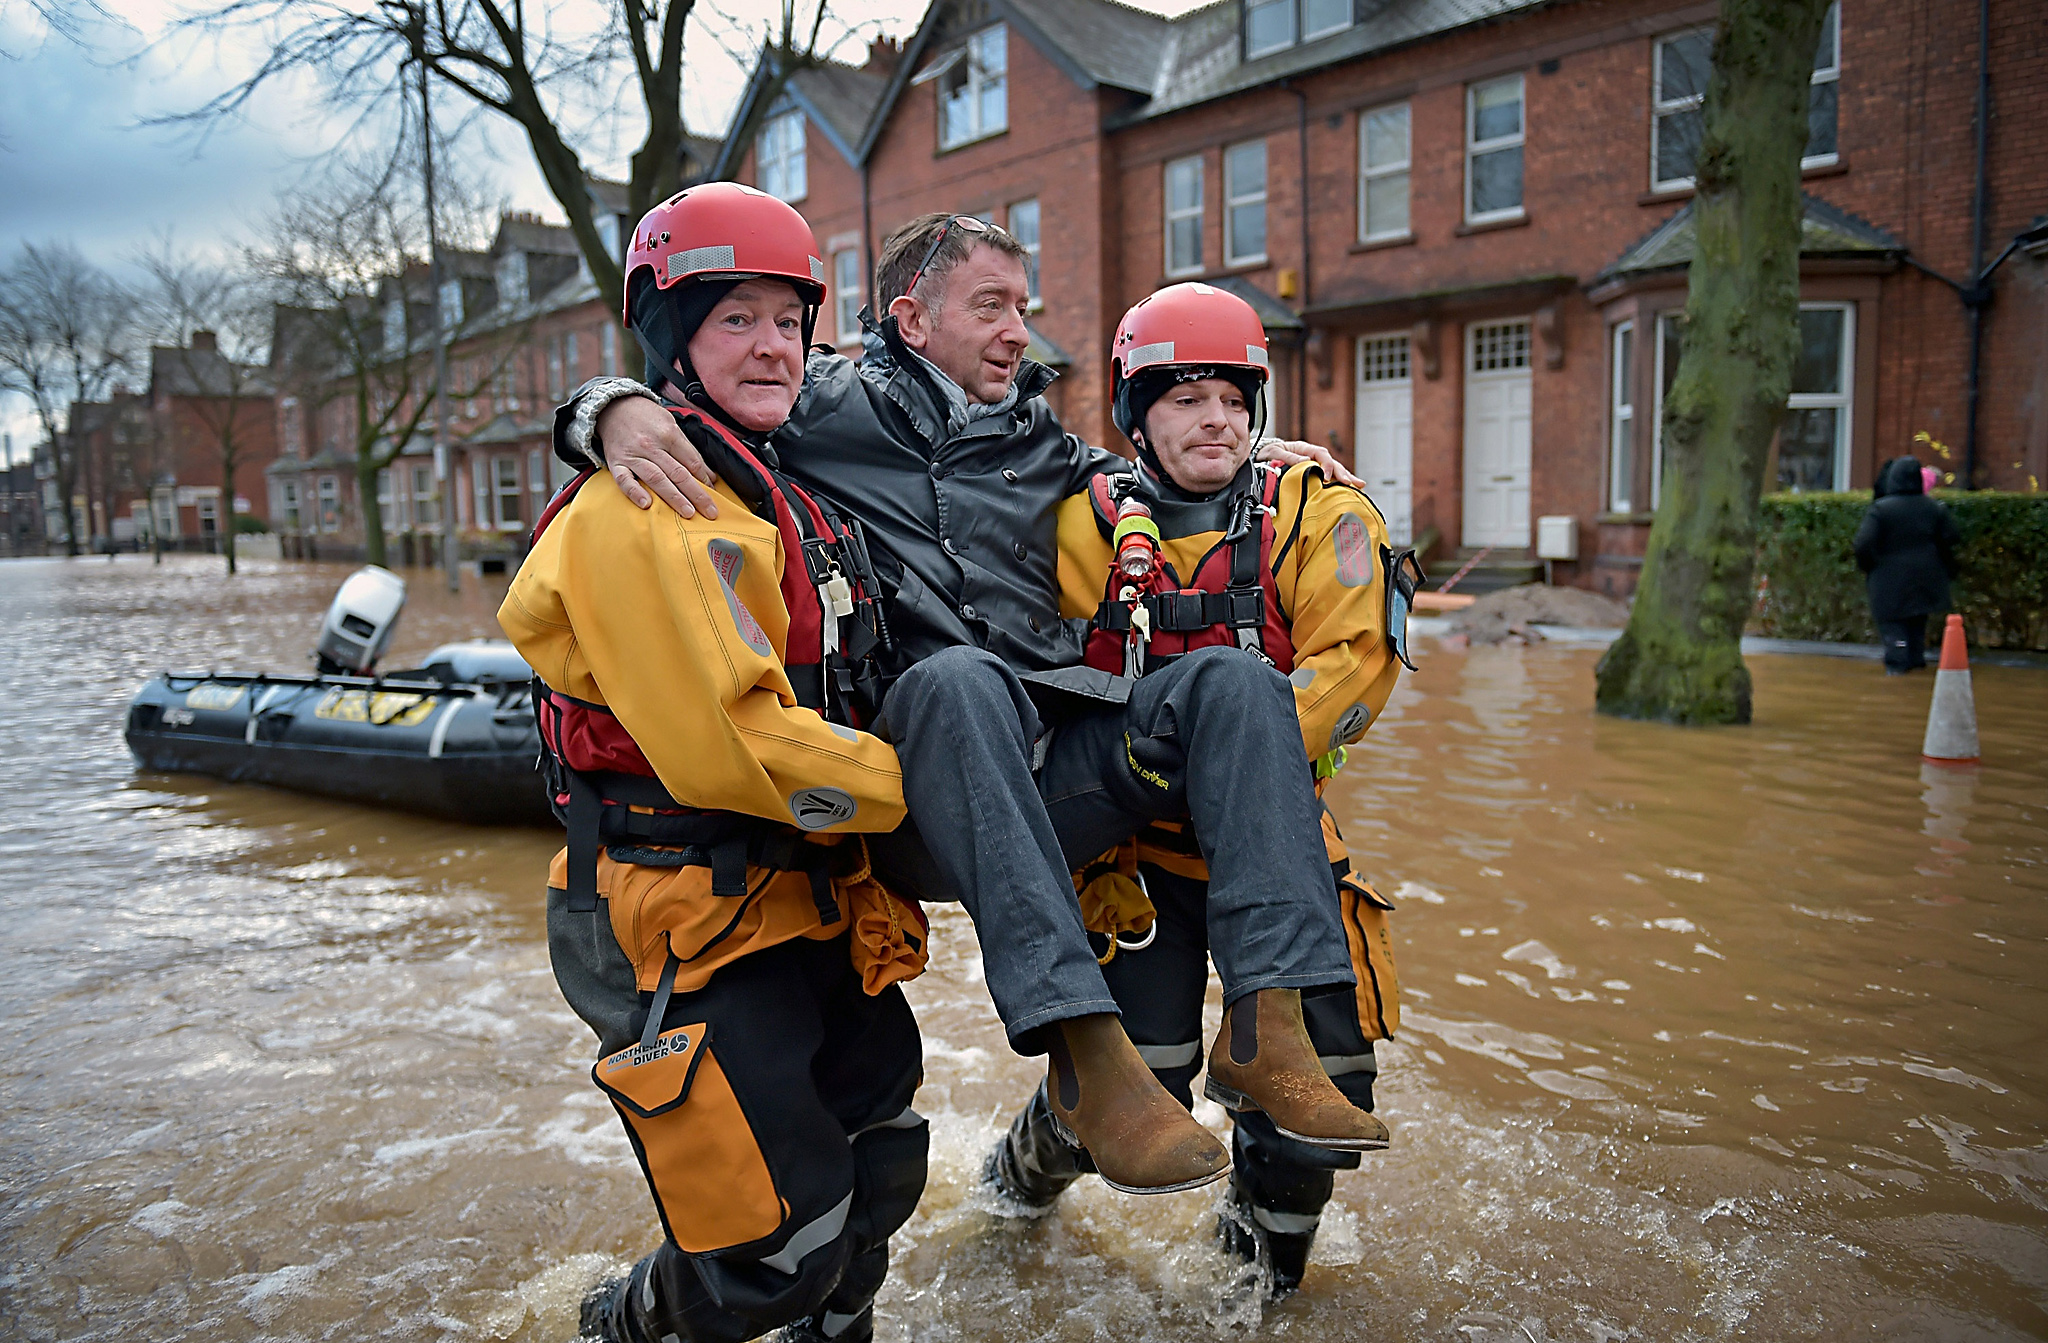 Flooding Chaos As Thousands Evacuated Across Northern England...CARLISLE, ENGLAND - DECEMBER 07:  Rescue teams carry people to safety through the flood water as they continue to to evacuate homes after Storm Desmond caused flooding on December 7, 2015 in Carlisle, England. Storm Desmond has brought severe disruption to areas of northern England with dozens of flood warnings remaining in place throughout the country. (Photo by Jeff J Mitchell/Getty Images)